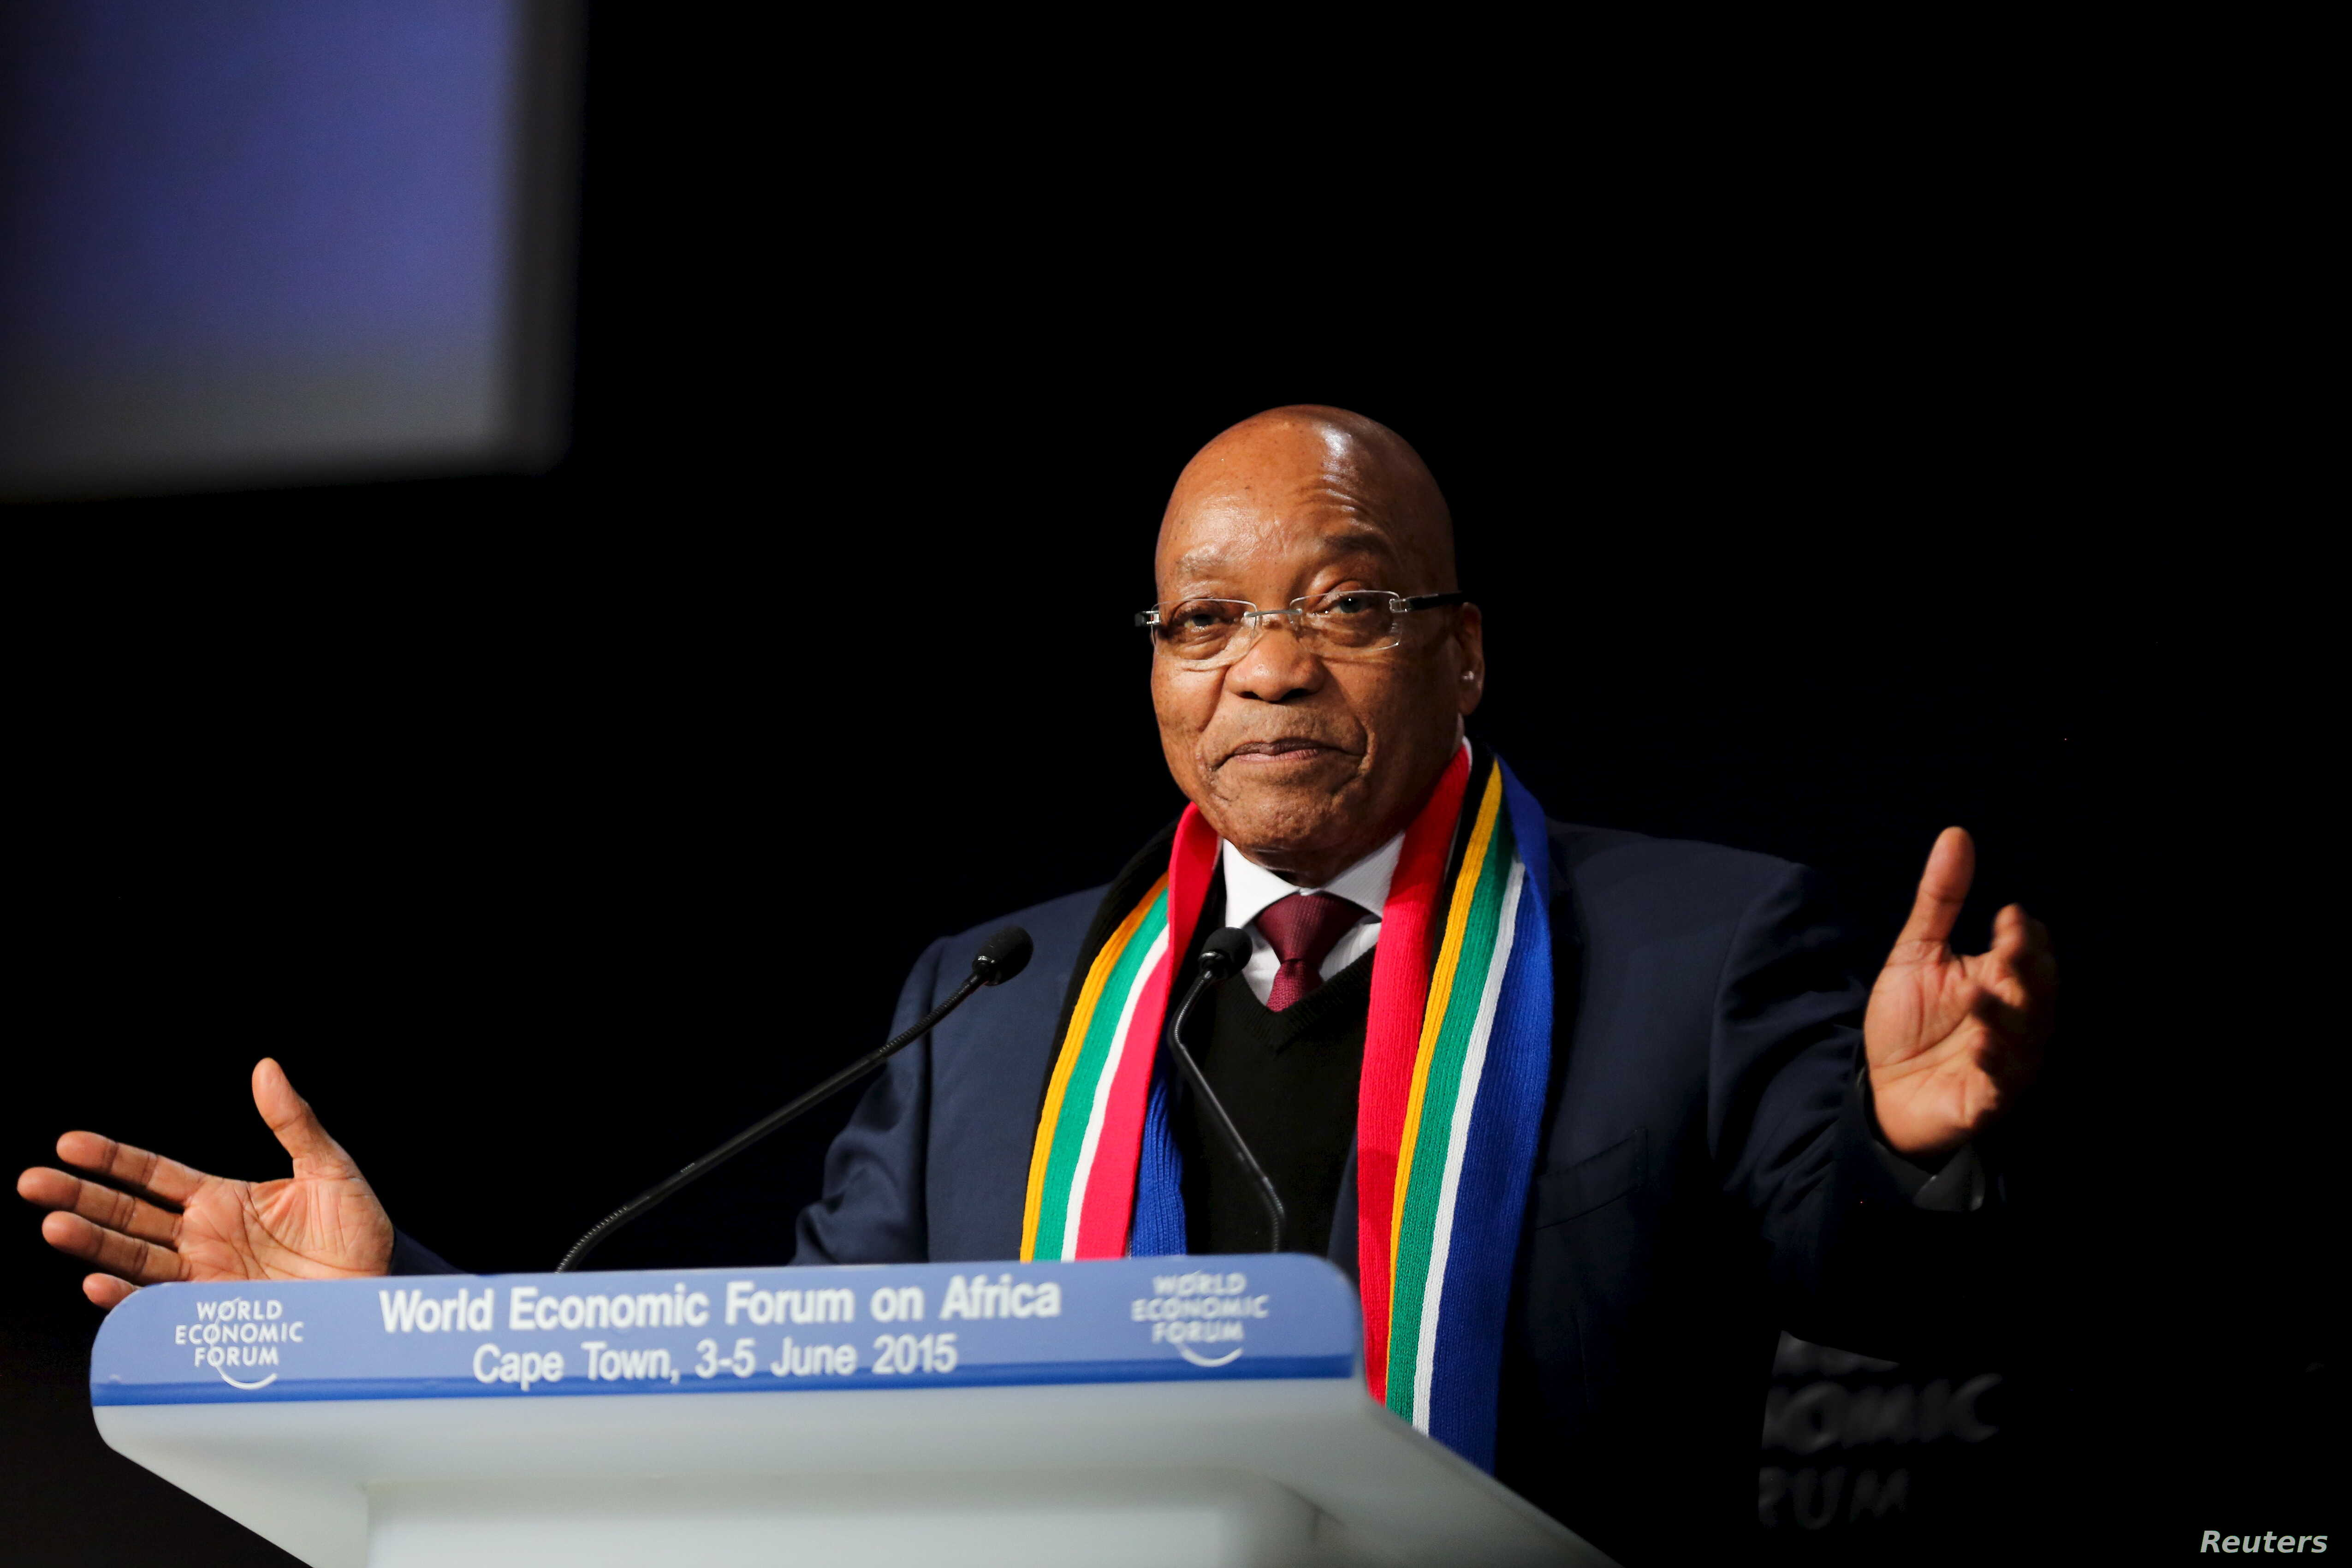 South African President Jacob Zuma speaks at the opening plenary session of the World Economic Forum (WEF) on Africa in Cape Town, June 4, 2015.